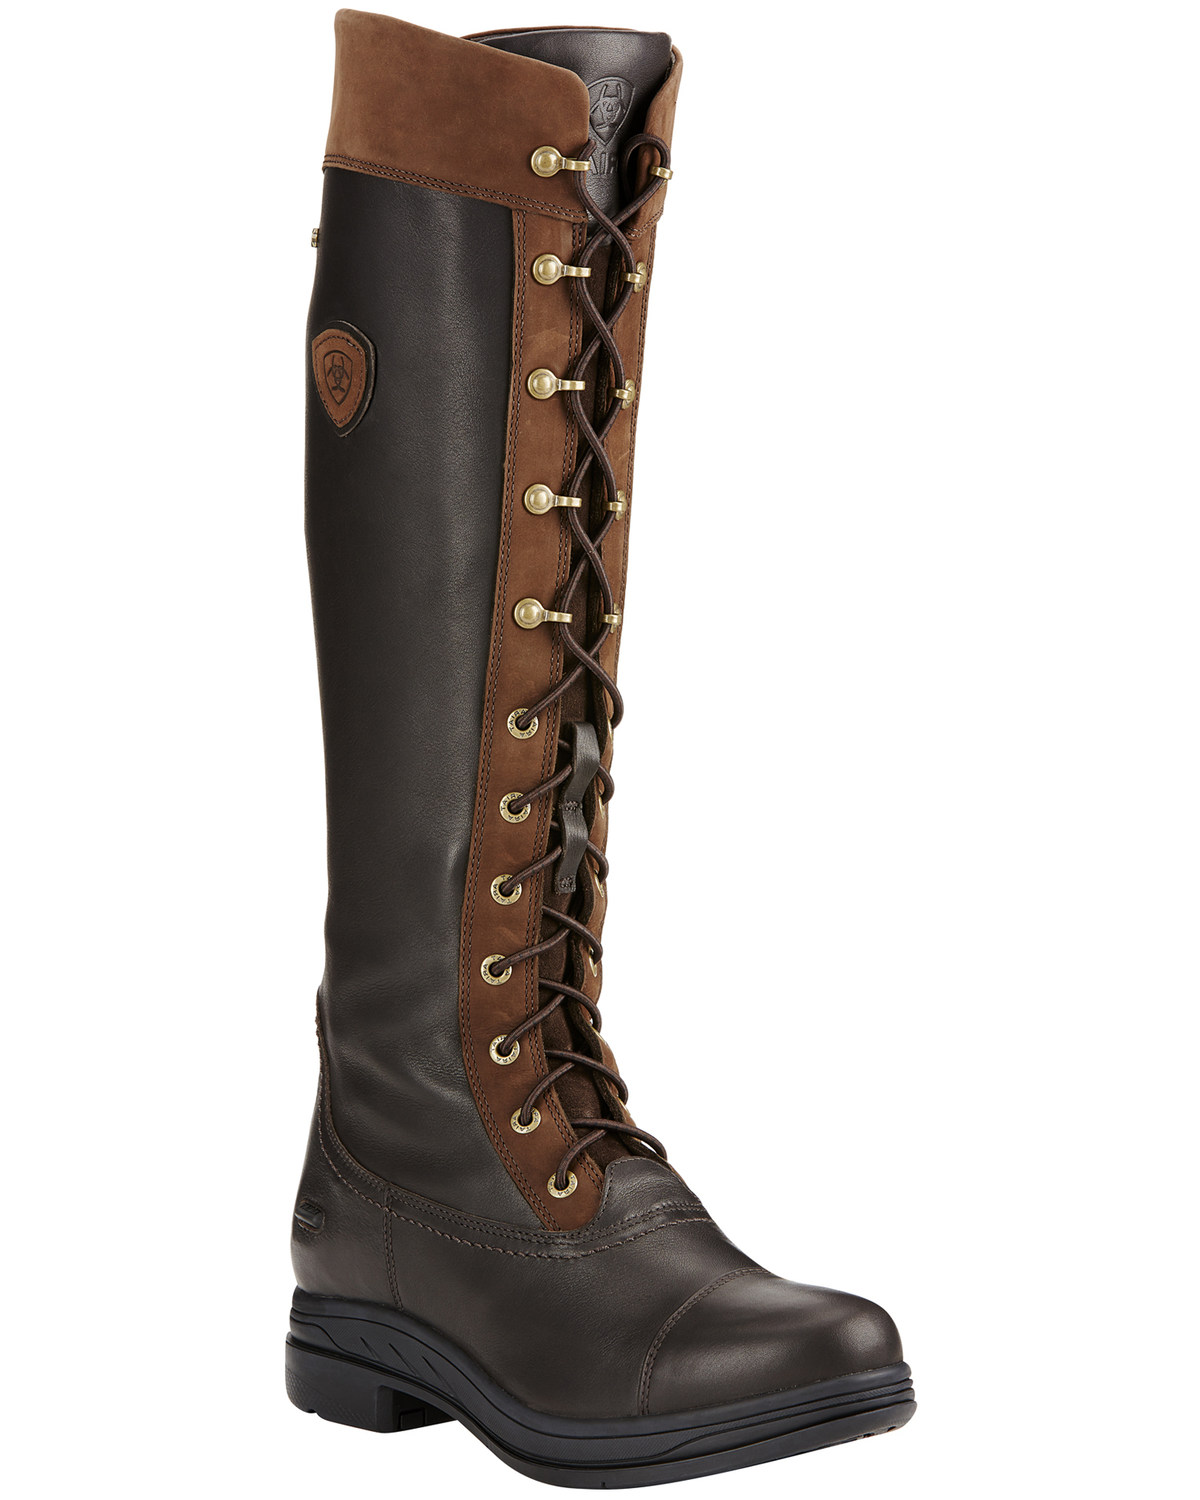 Ariat Women's Coniston Pro GTX Insulated English Boots ...